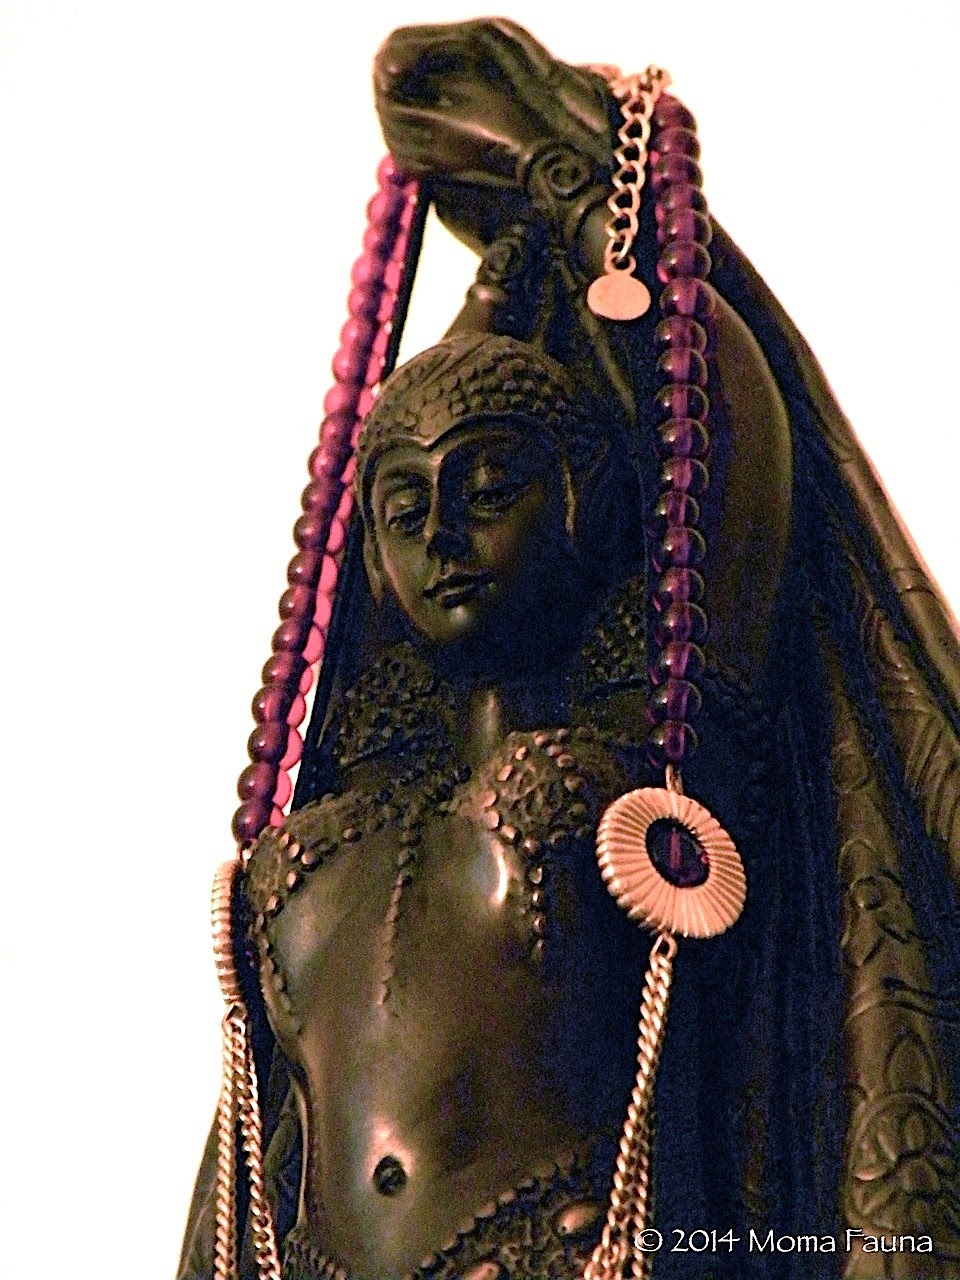 NYX, Νύξ, Nox Household Shrine Bronze Figure.